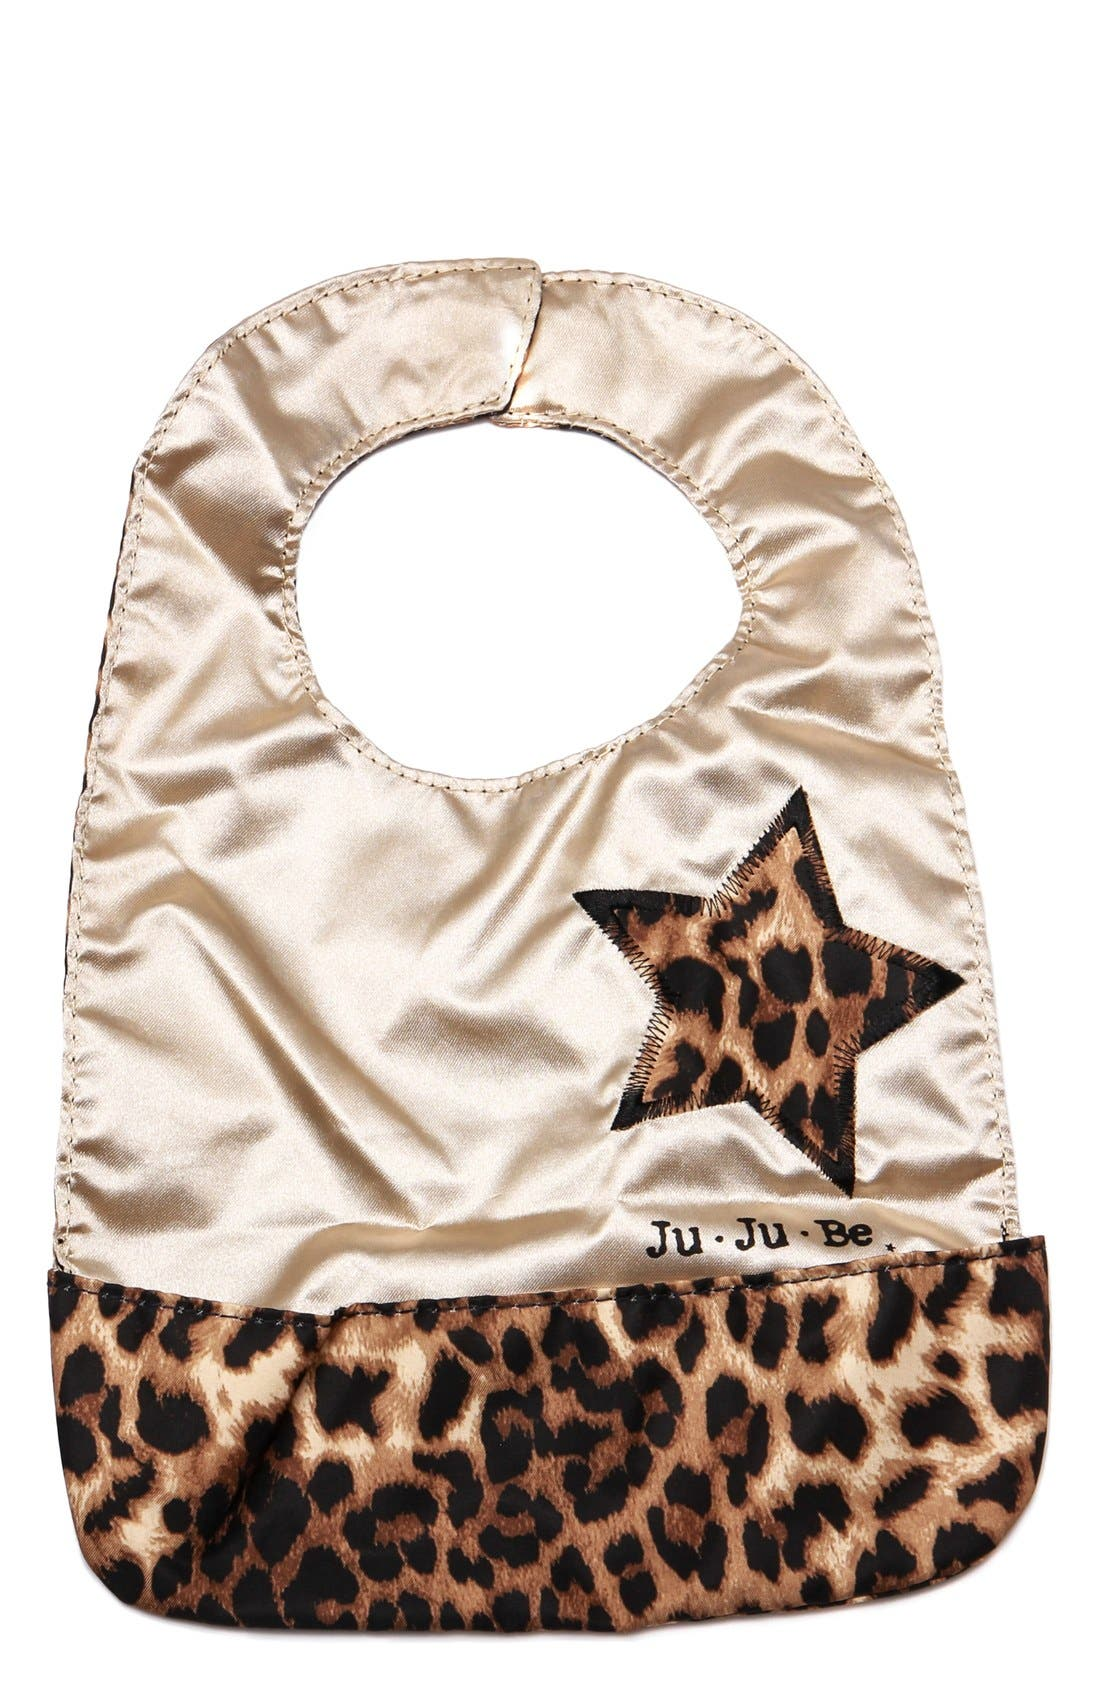 Ju-Ju-Be 'Be Neat' Reversible Bib